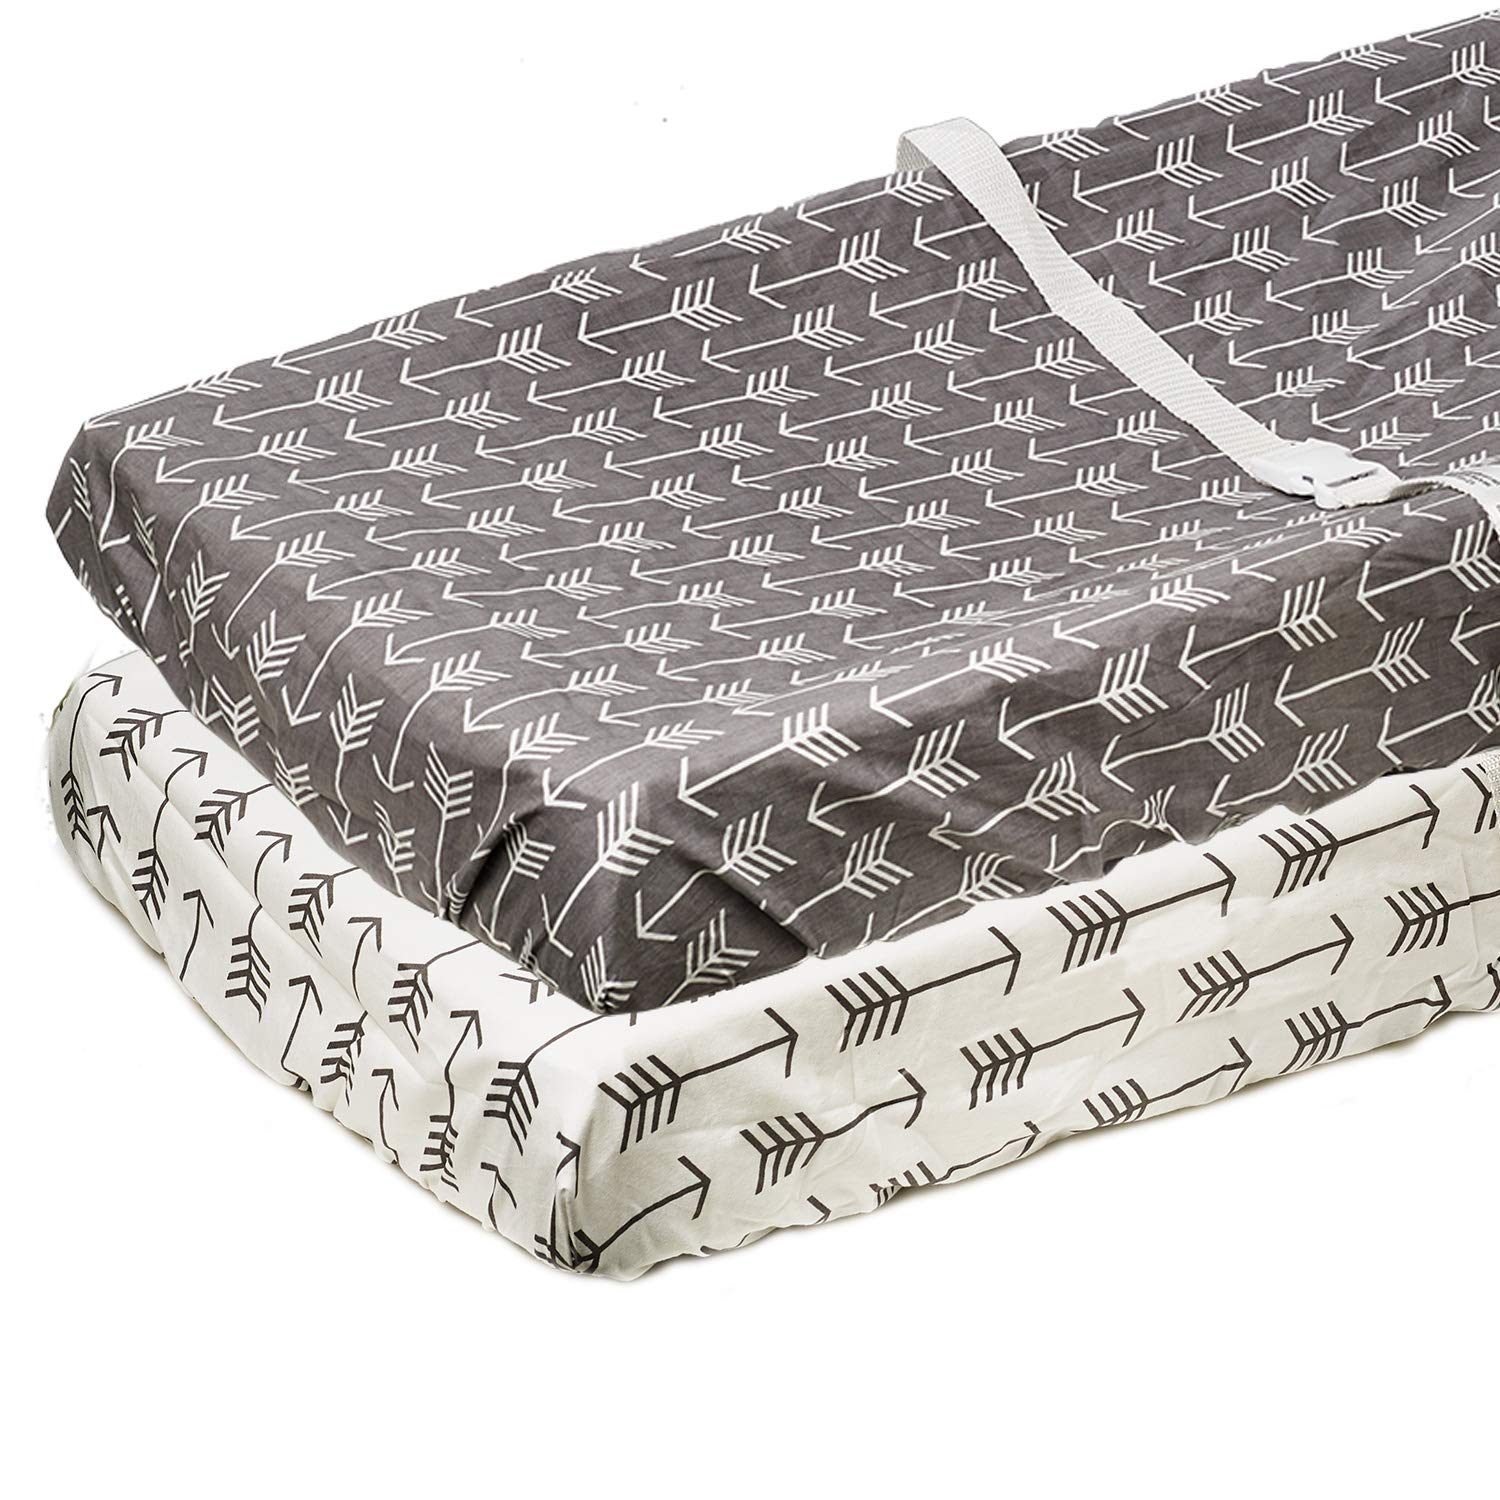 Org Store Premium Buffalo Check Changing Pad Cover Set 100/% Cotton Universal Plaid Changing Table Pad Cover 2-Pack